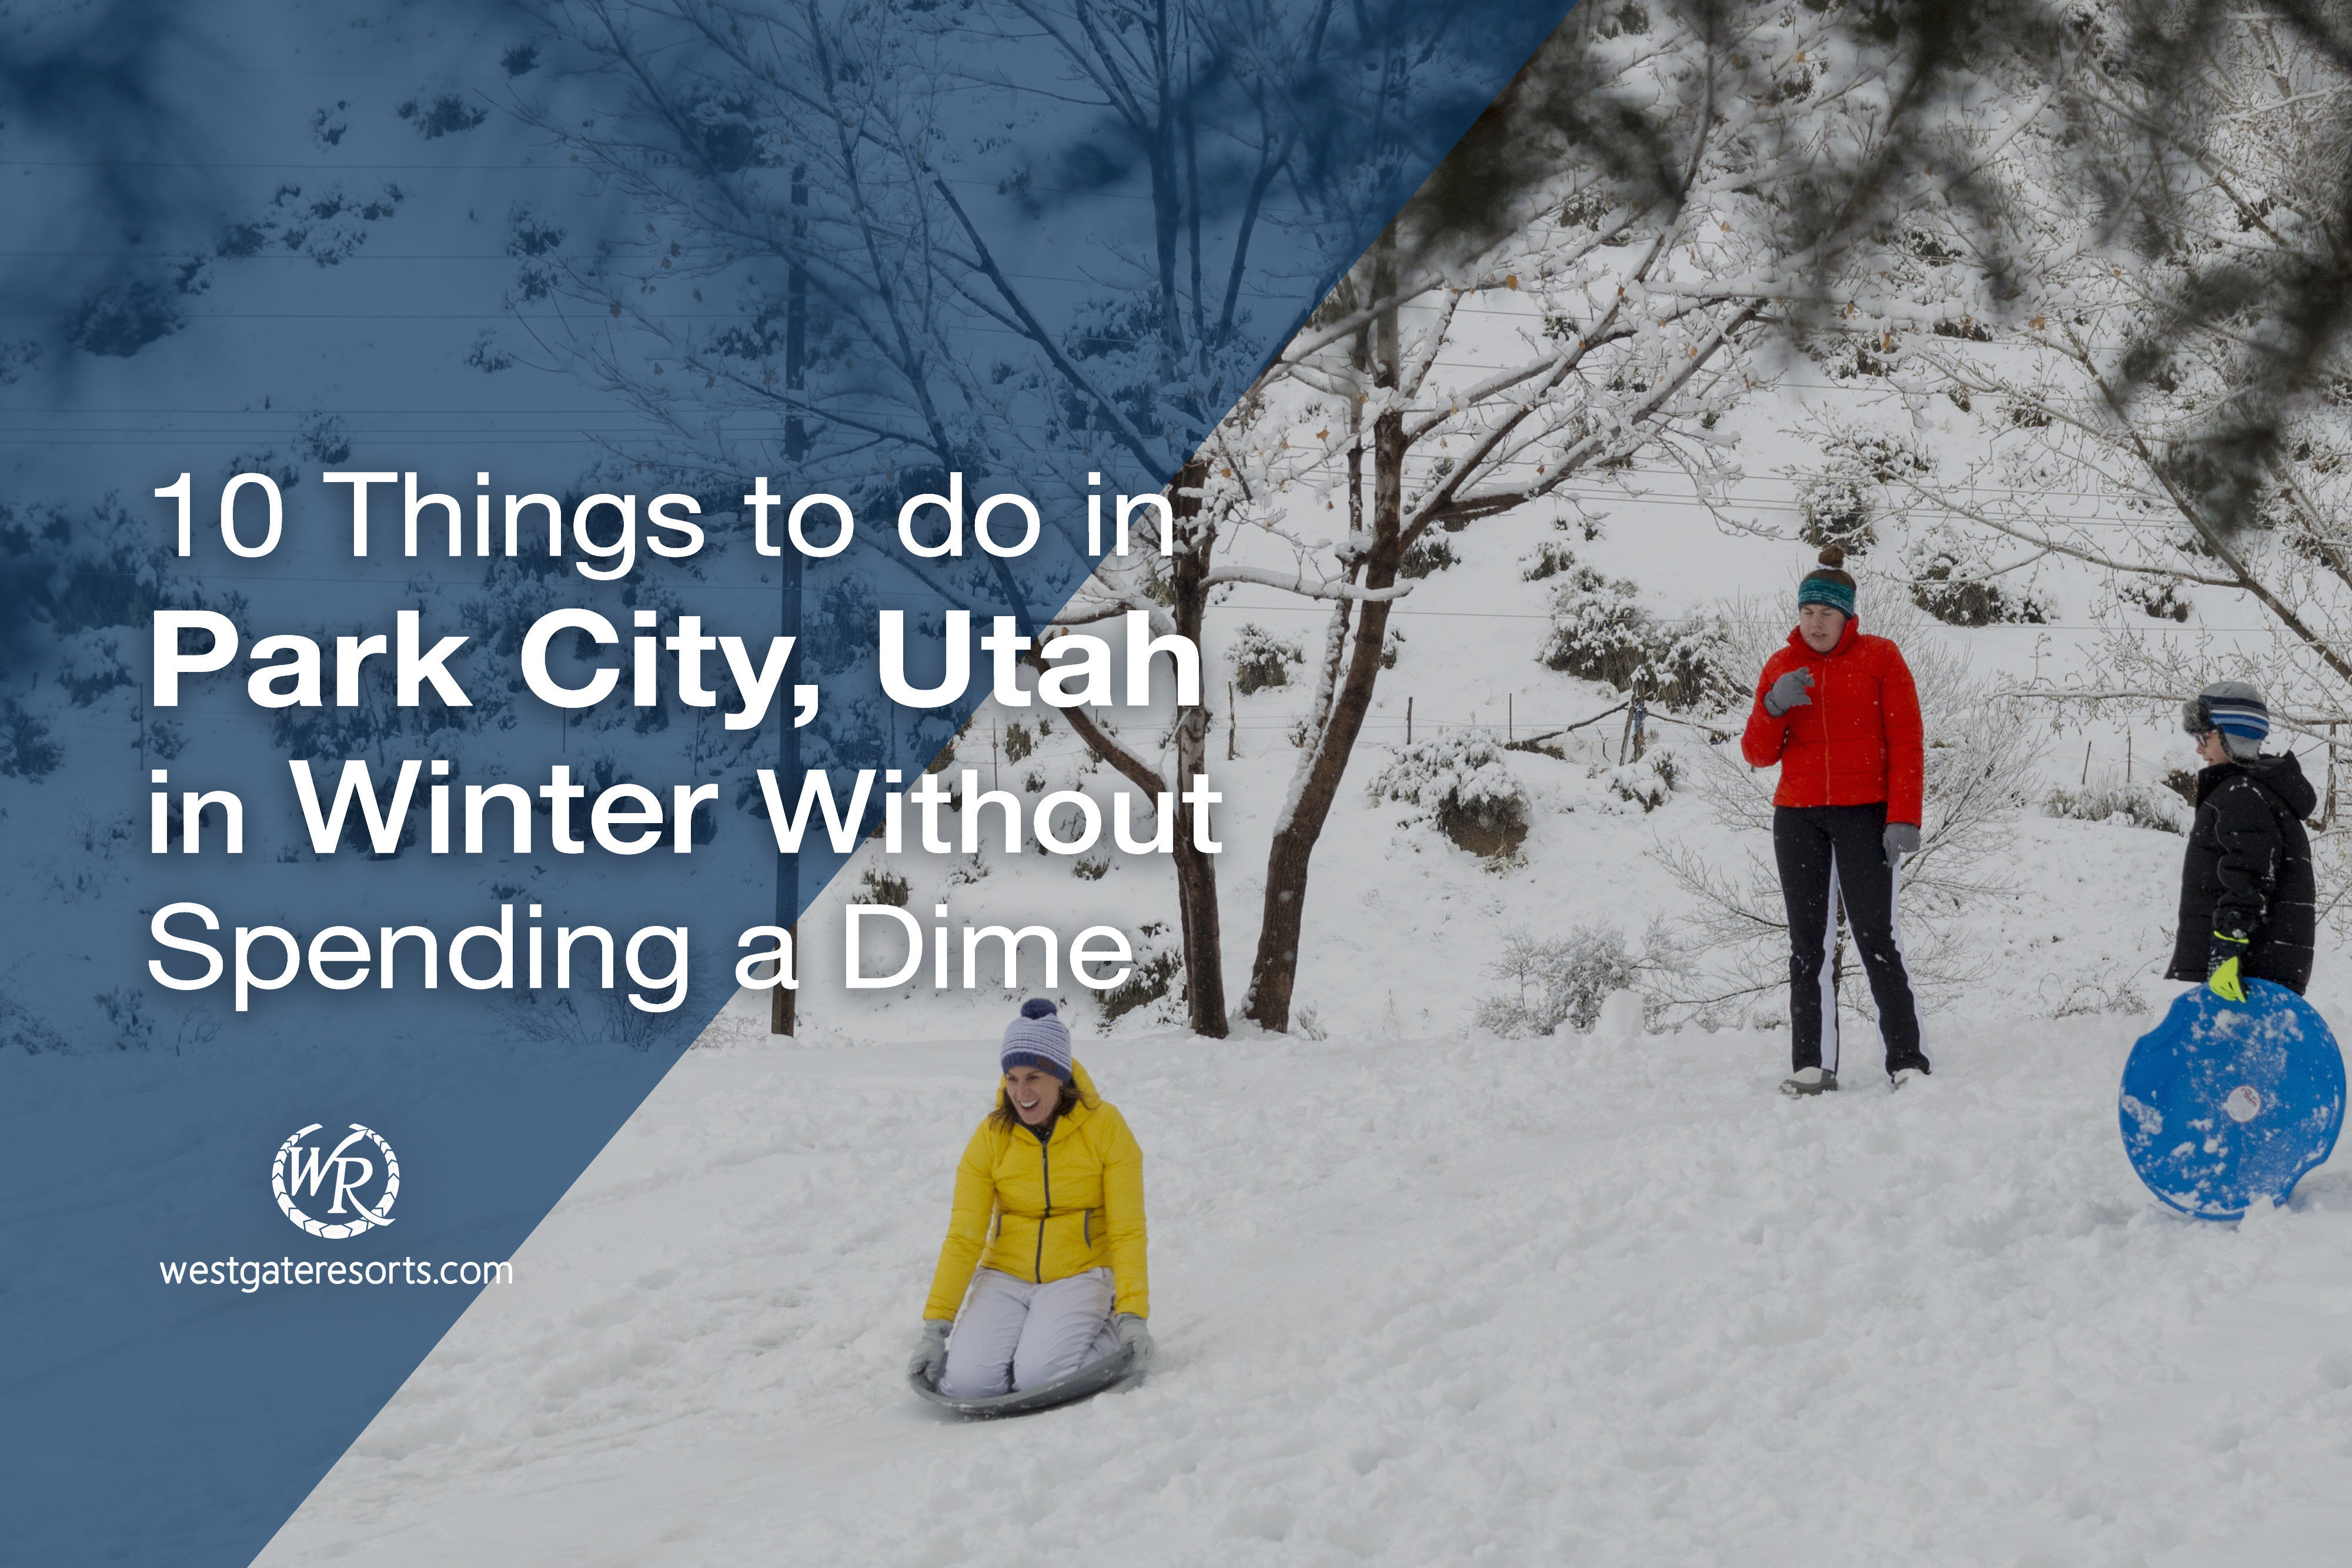 10 Things to do in Park City Utah in Winter Without Spending a Dime